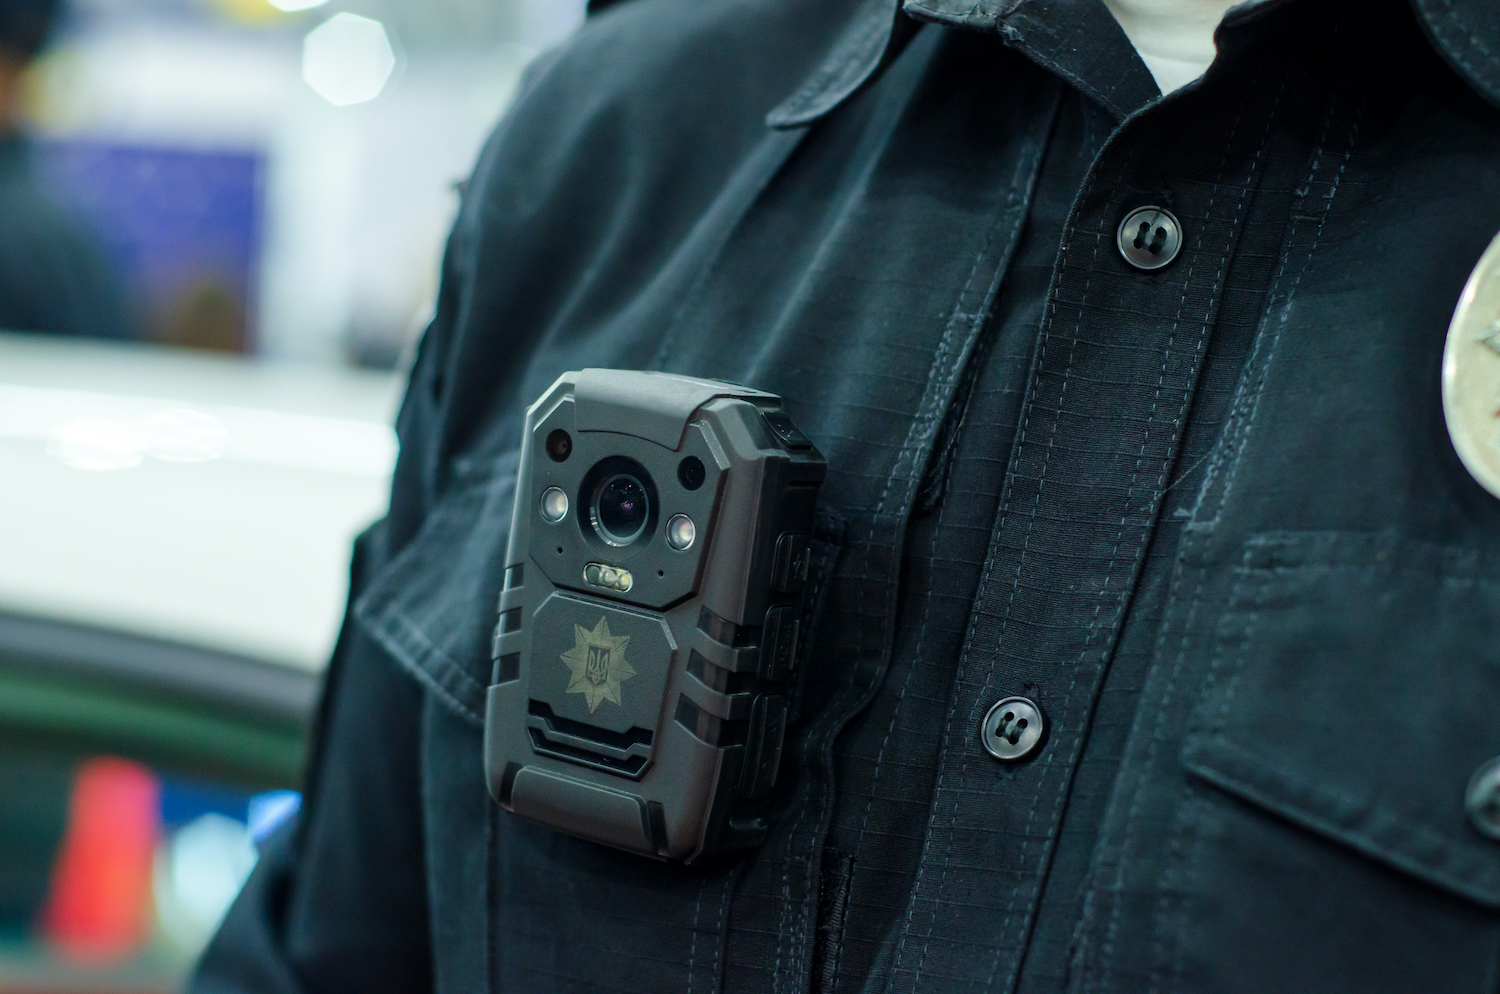 The Truth About Police Body Cams